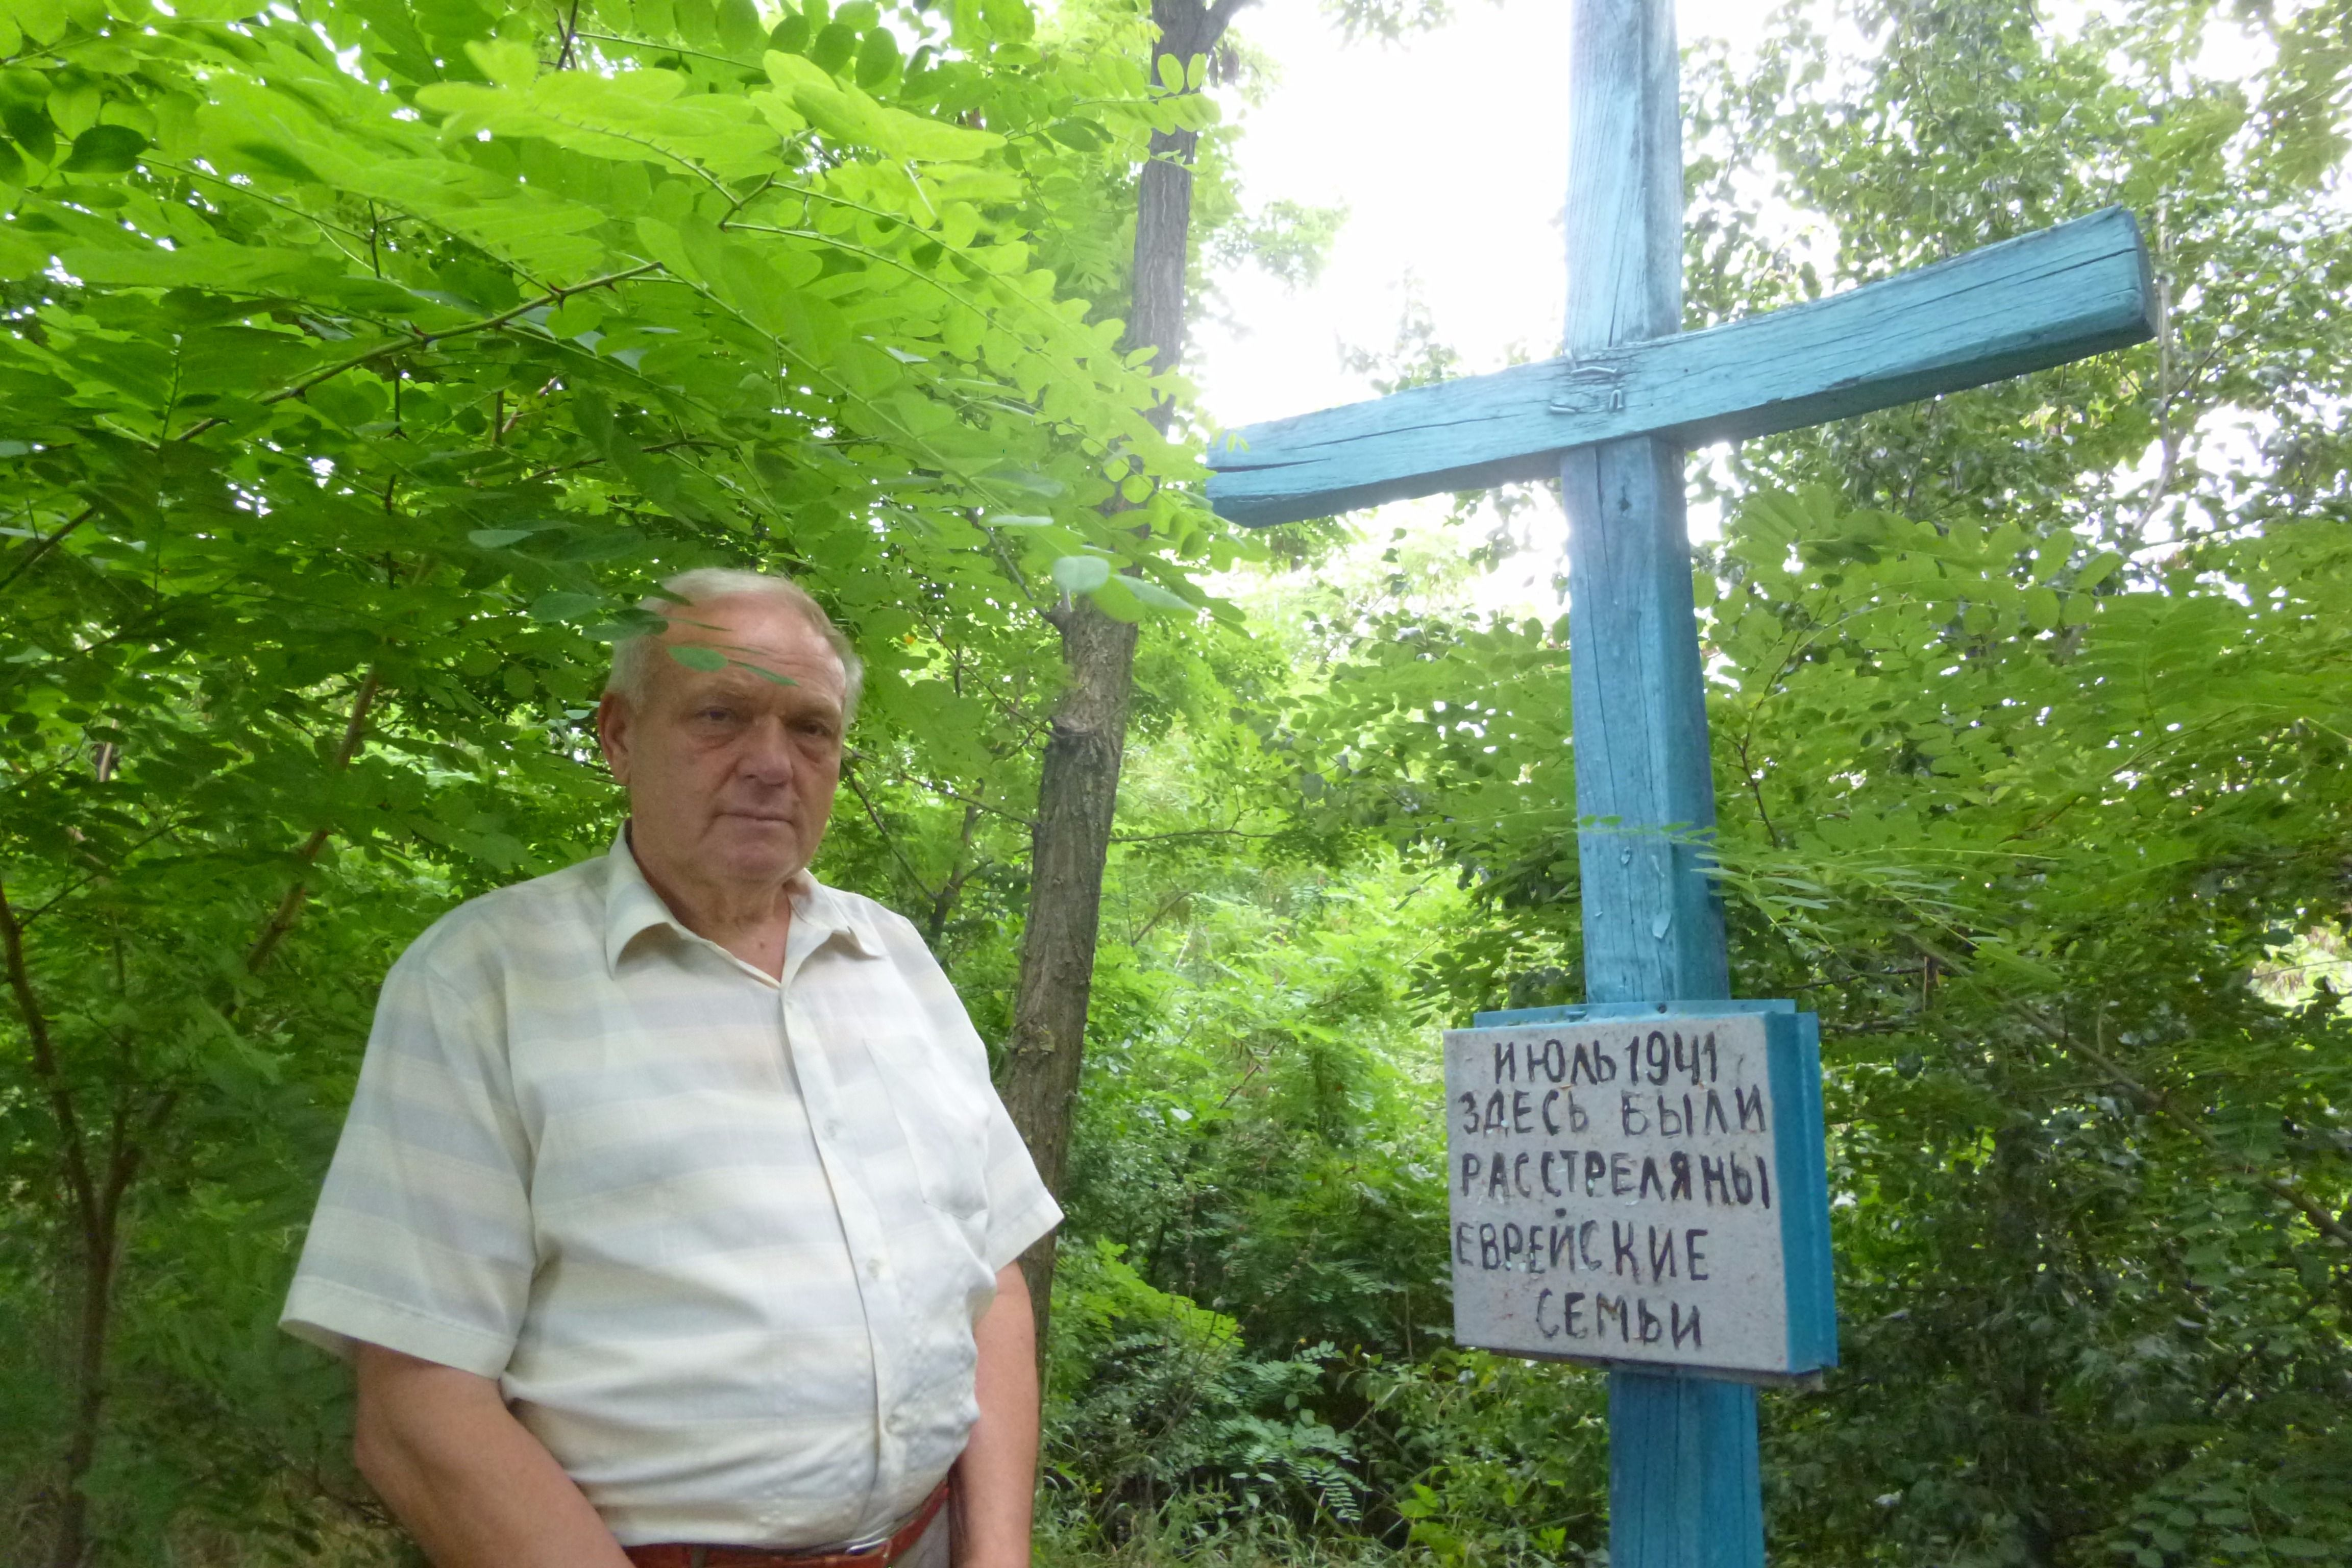 Educator Ivan Timoshko stands next to the memorial he built with his students for Jewish victims of the Holocaust massacre near his village.